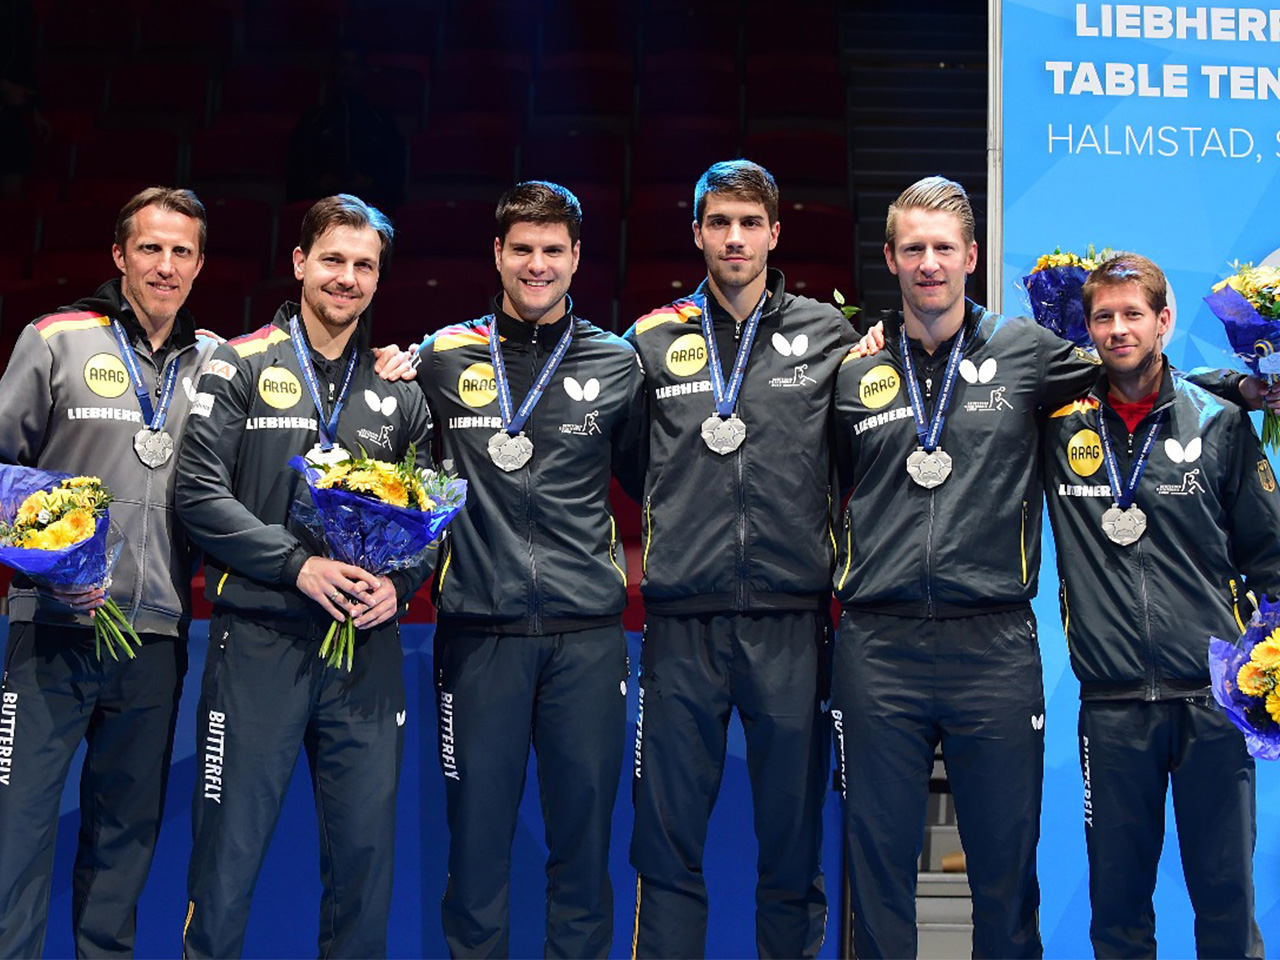 Silbermedaille Team WM 2018 in Halmstad/Schweden (Foto: Manfred Schillings)